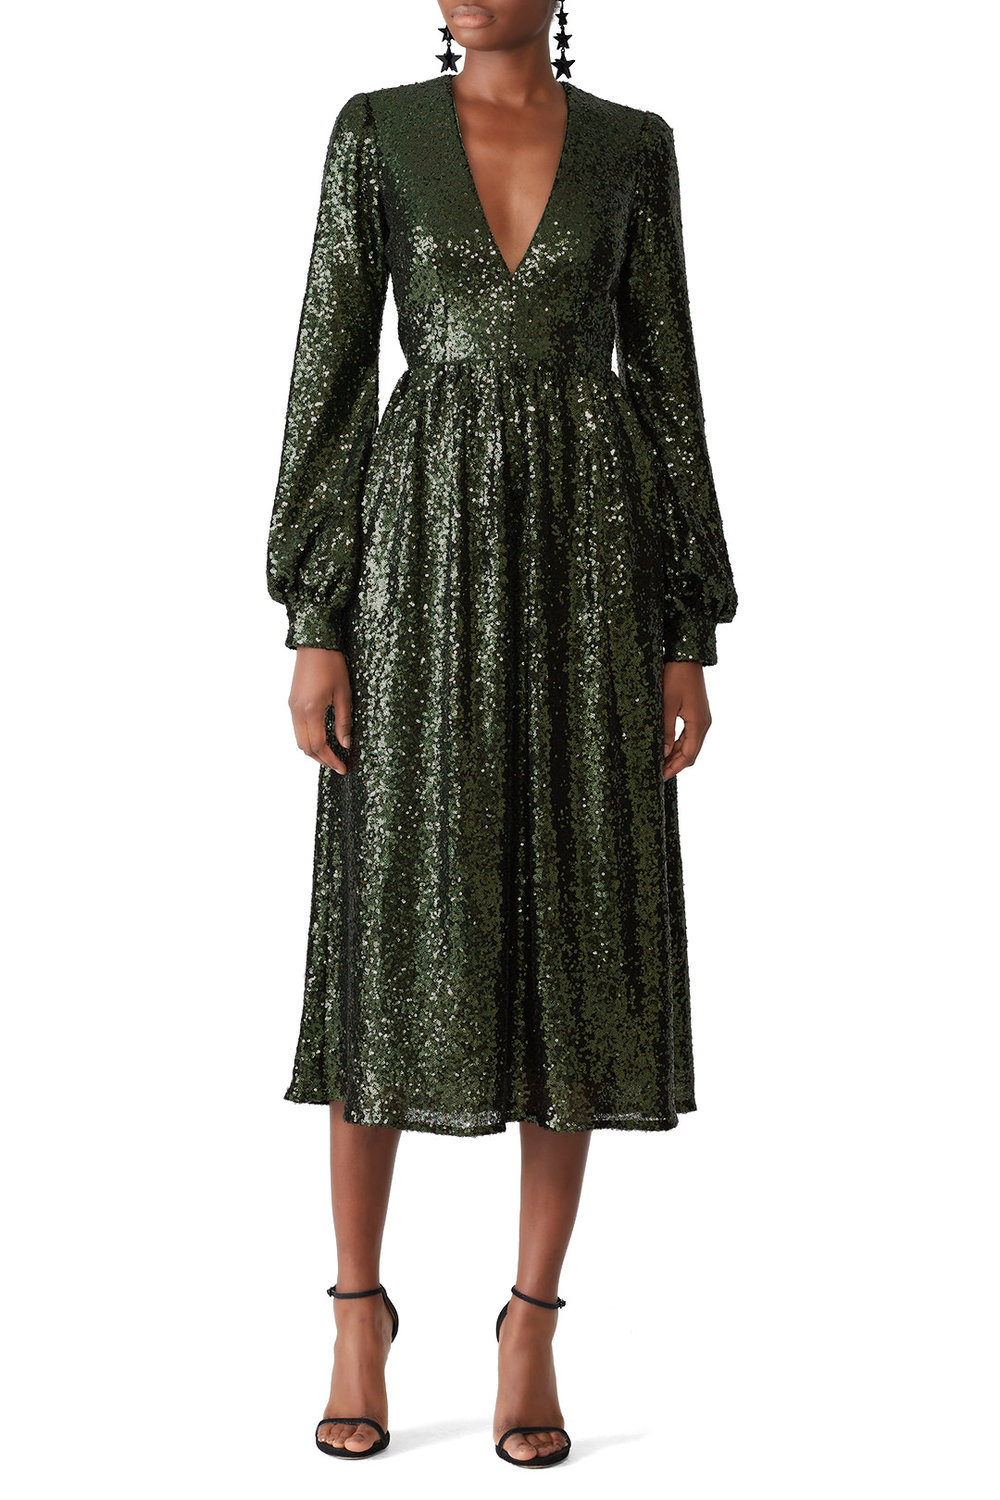 SALONI Camille-B Dress - See a theme here? Sequins. Need I say more?